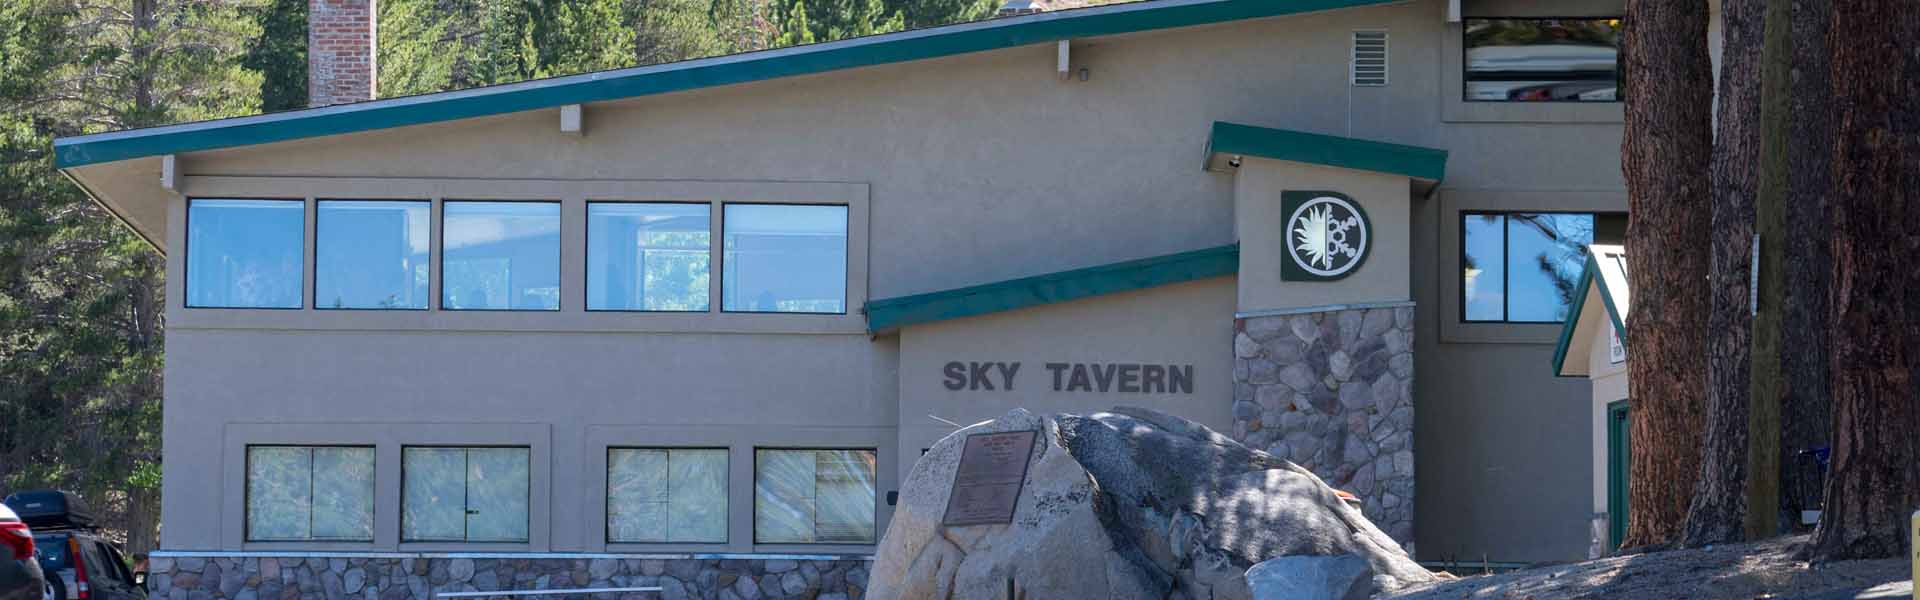 Sky-Tavern-Lodge.jpg